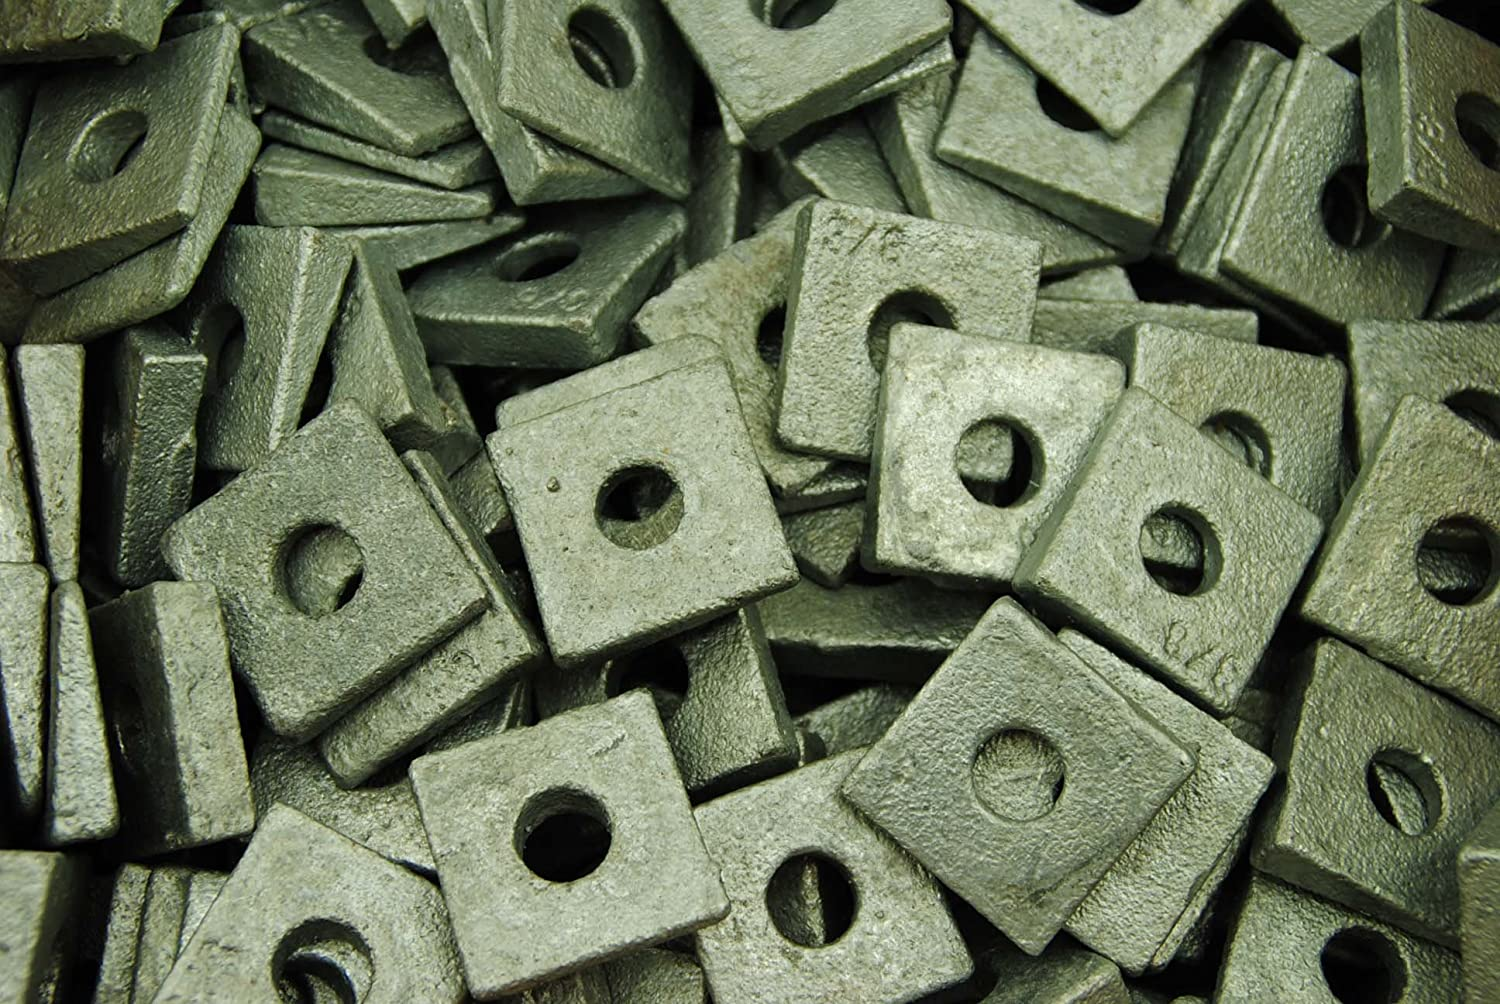 50 Galvanized Malleable 3 8 Bevel Square I-Beam Free Shipping Cheap Bargain Gift Flange Inventory cleanup selling sale Washers